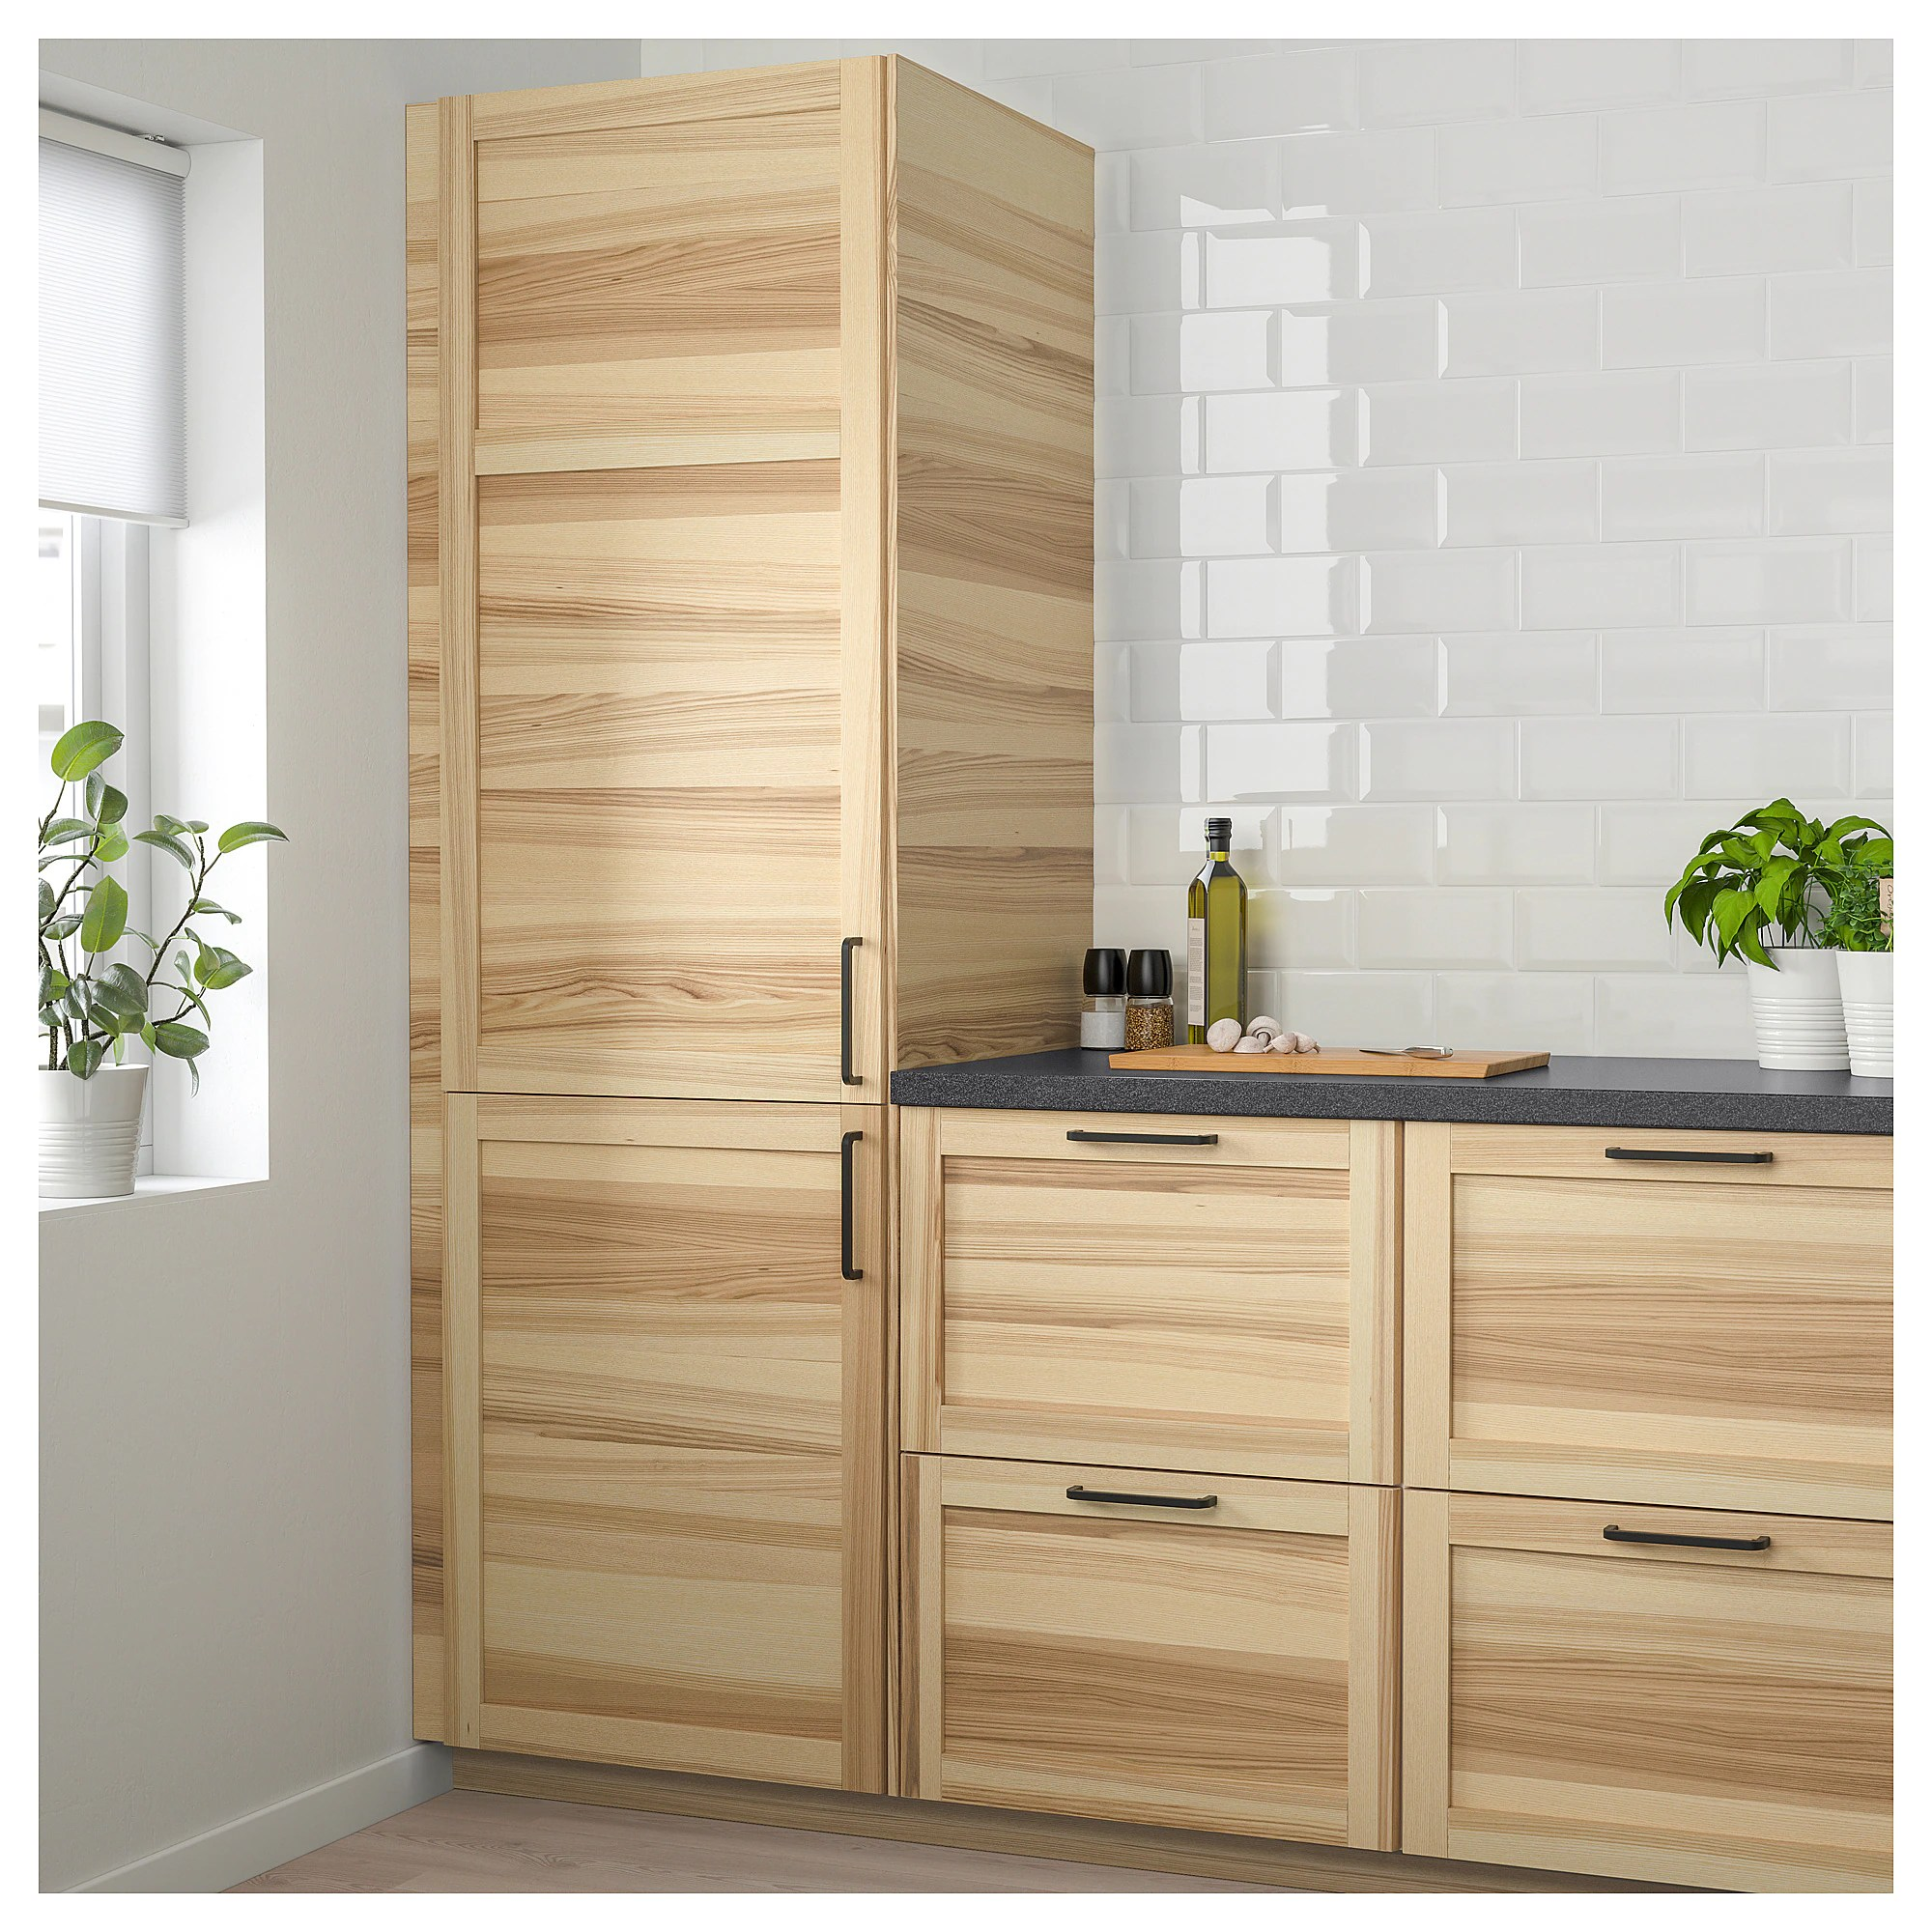 Ikea Keuken Essen Torhamn Door Natural Ash